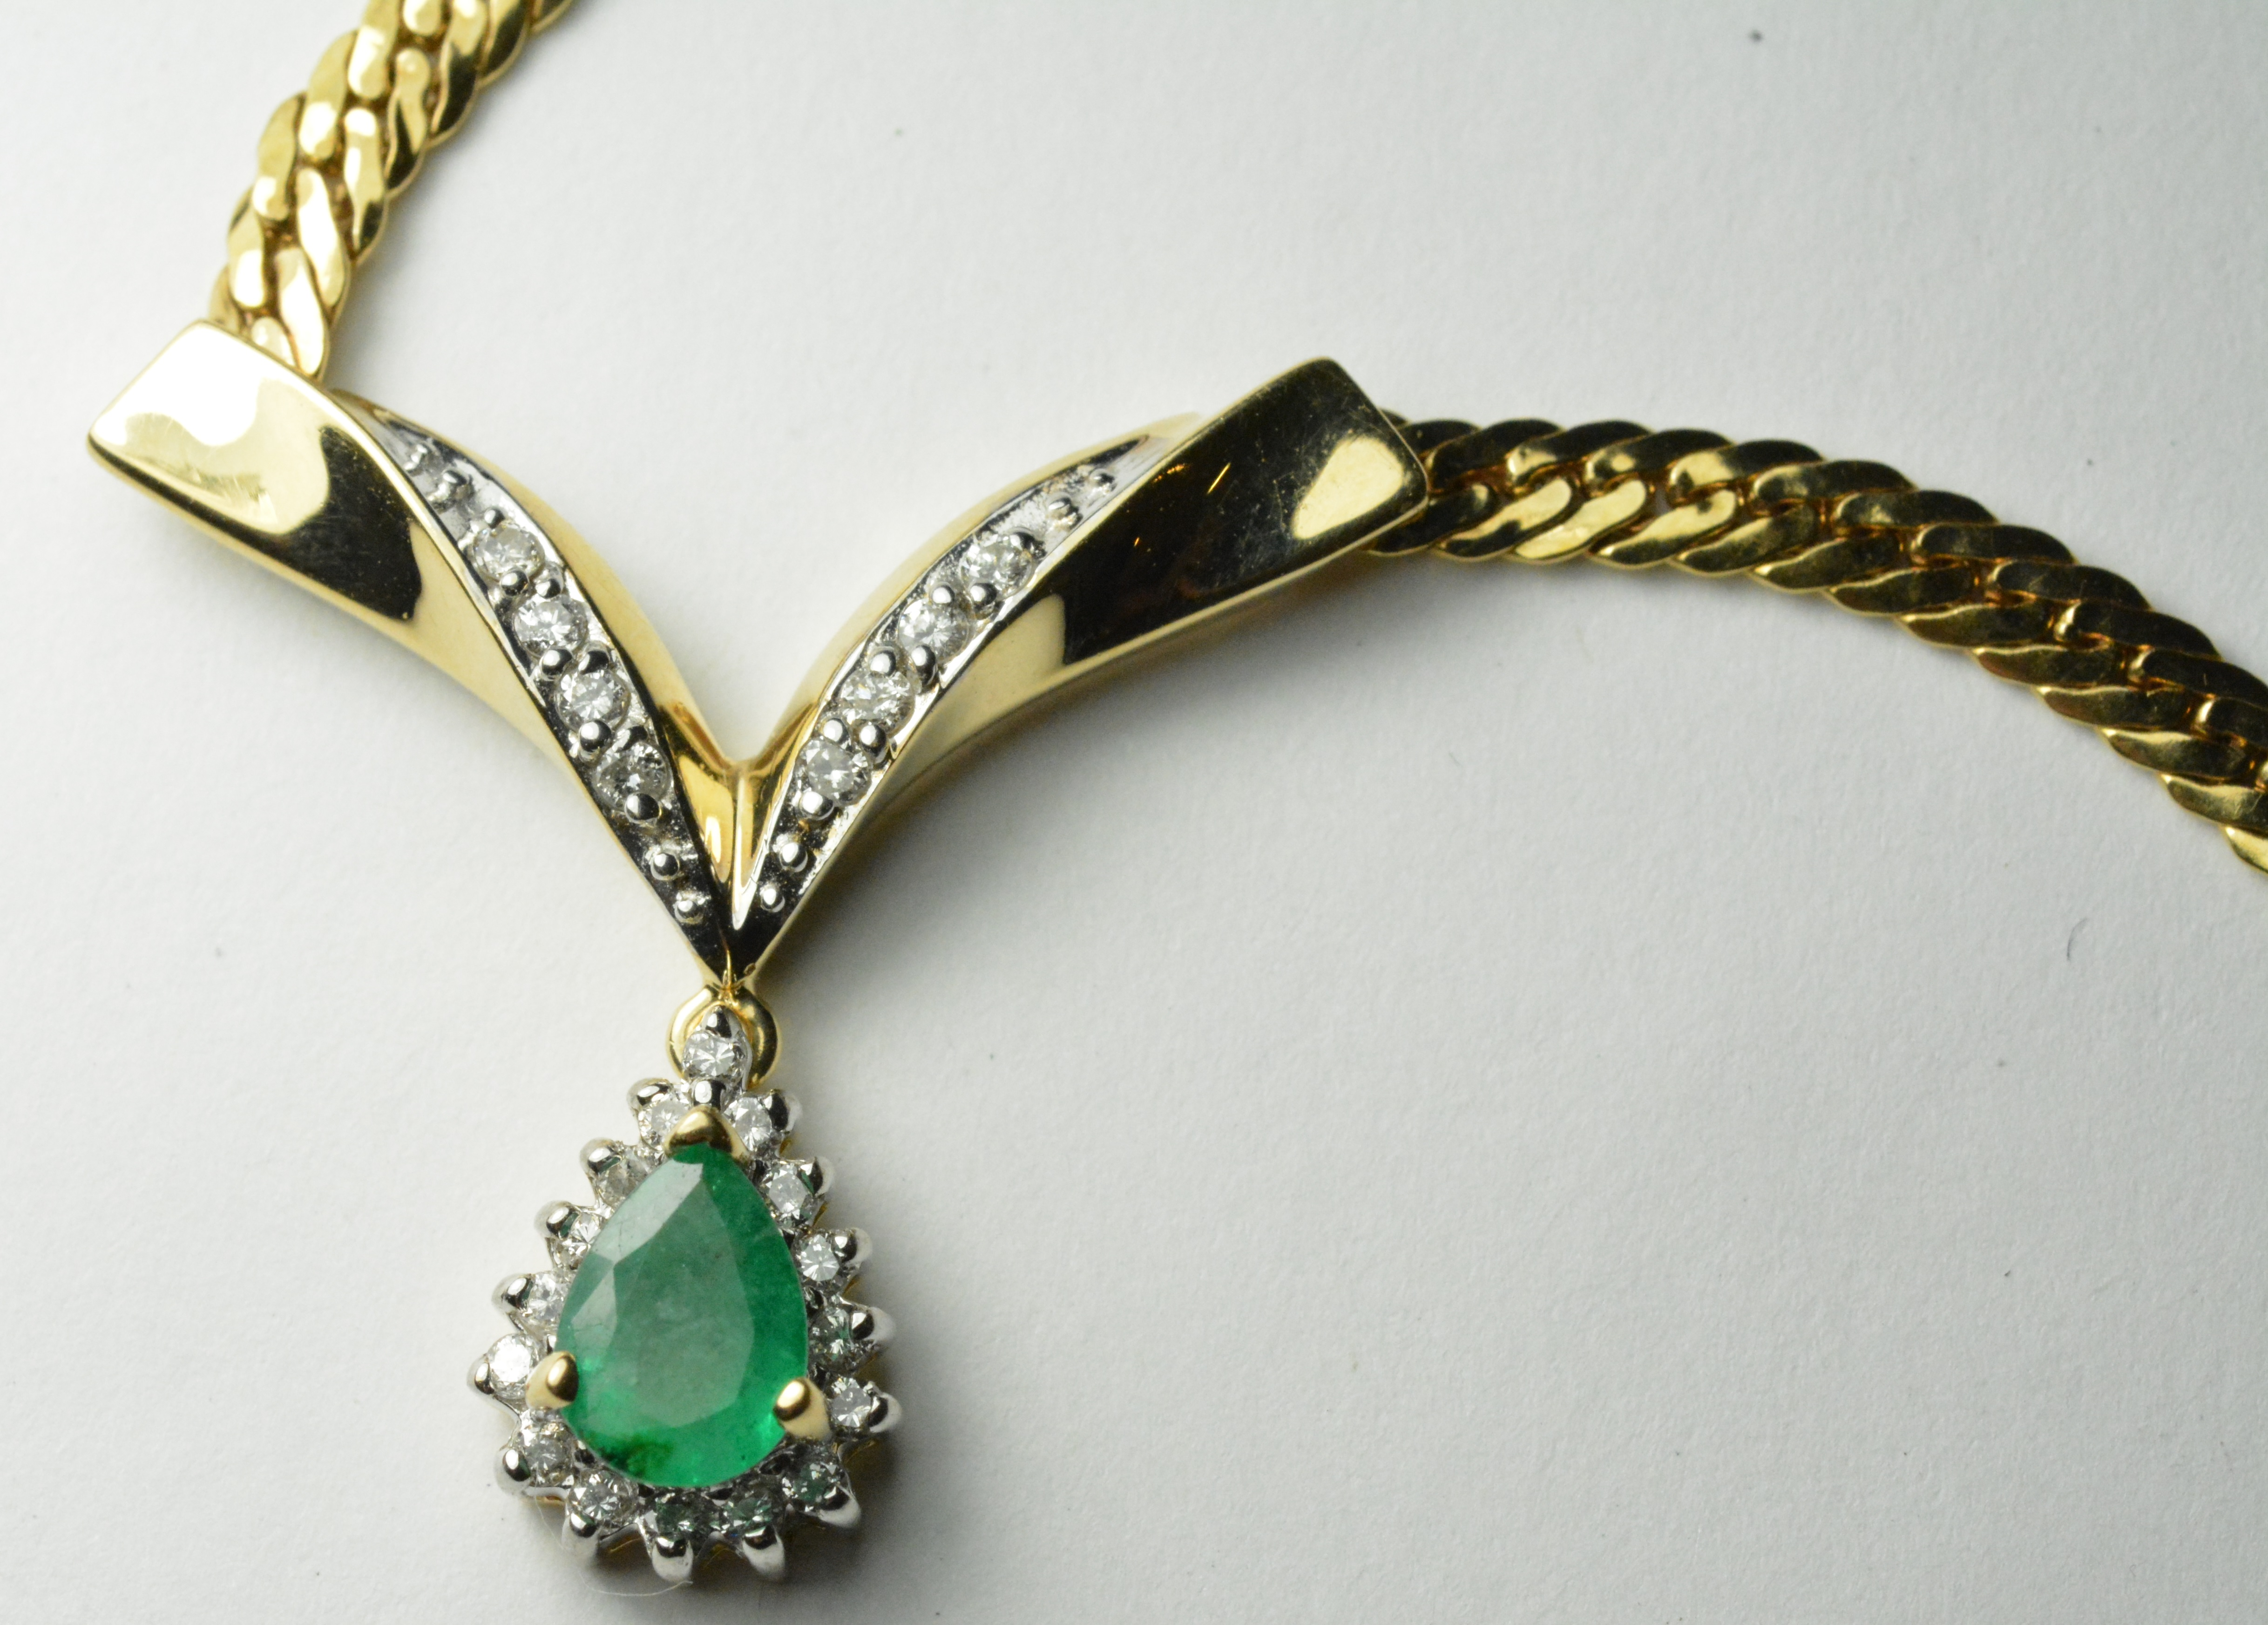 14k Yellow Gold Diamond Emerald Pear Shaped Necklace Set